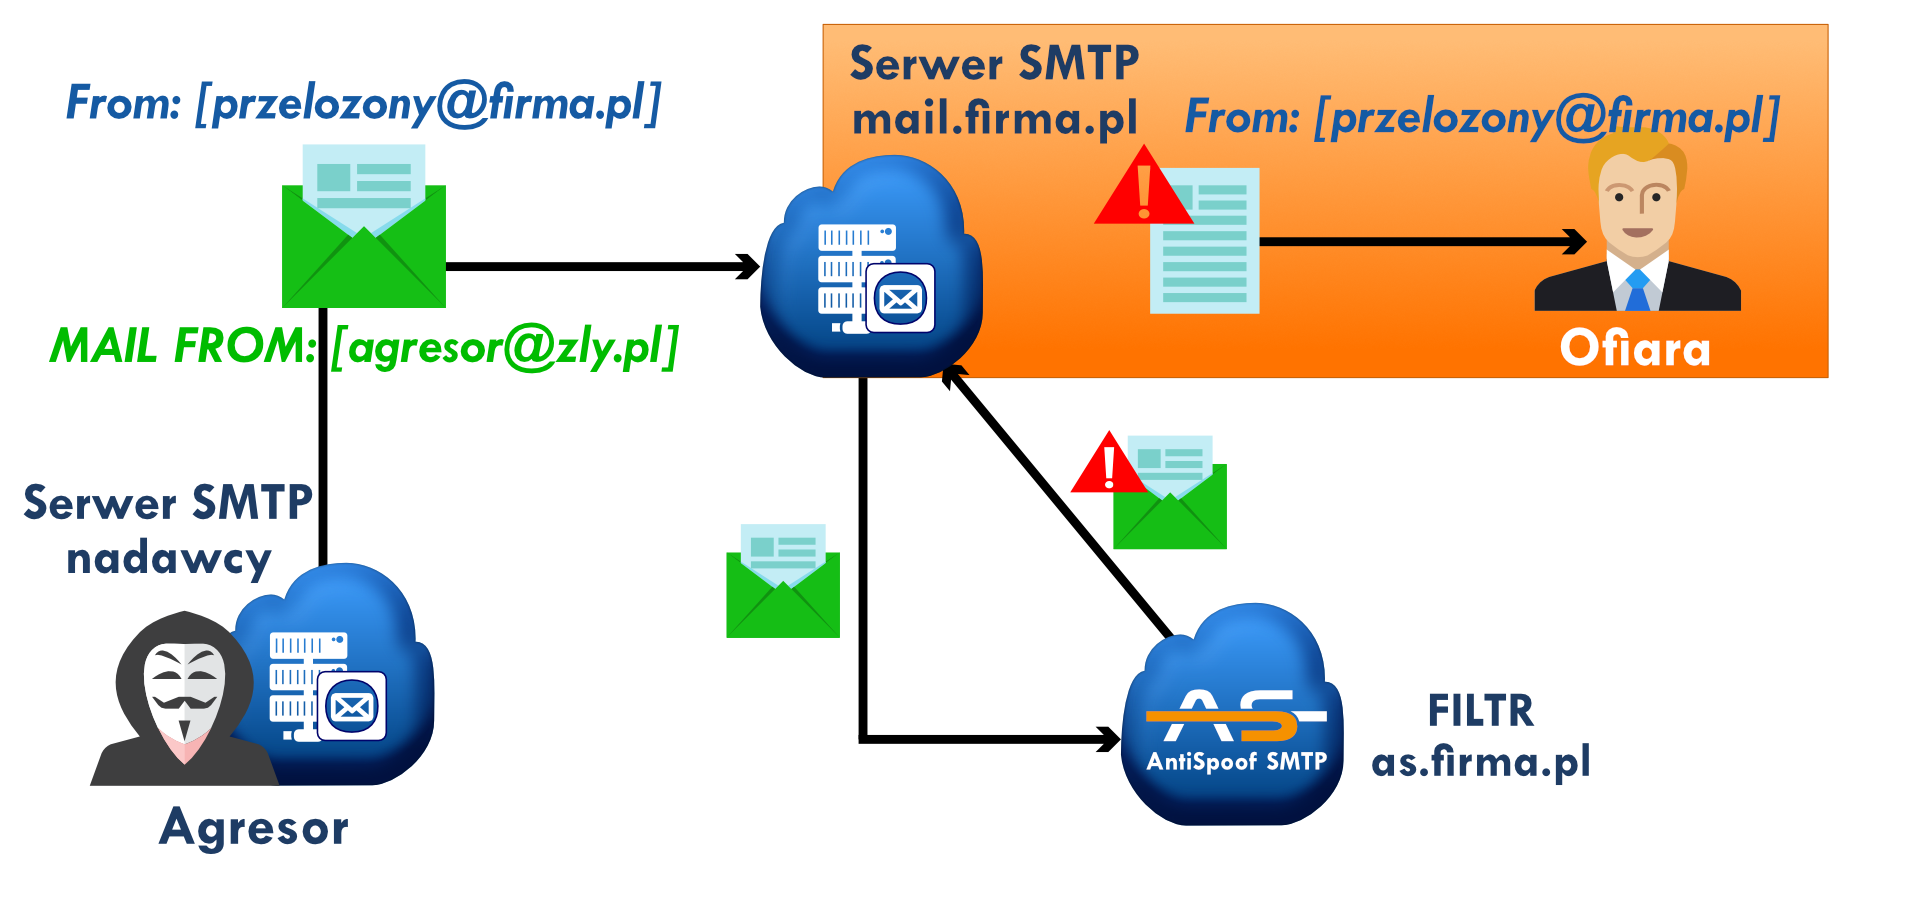 AntiSpoof SMTP